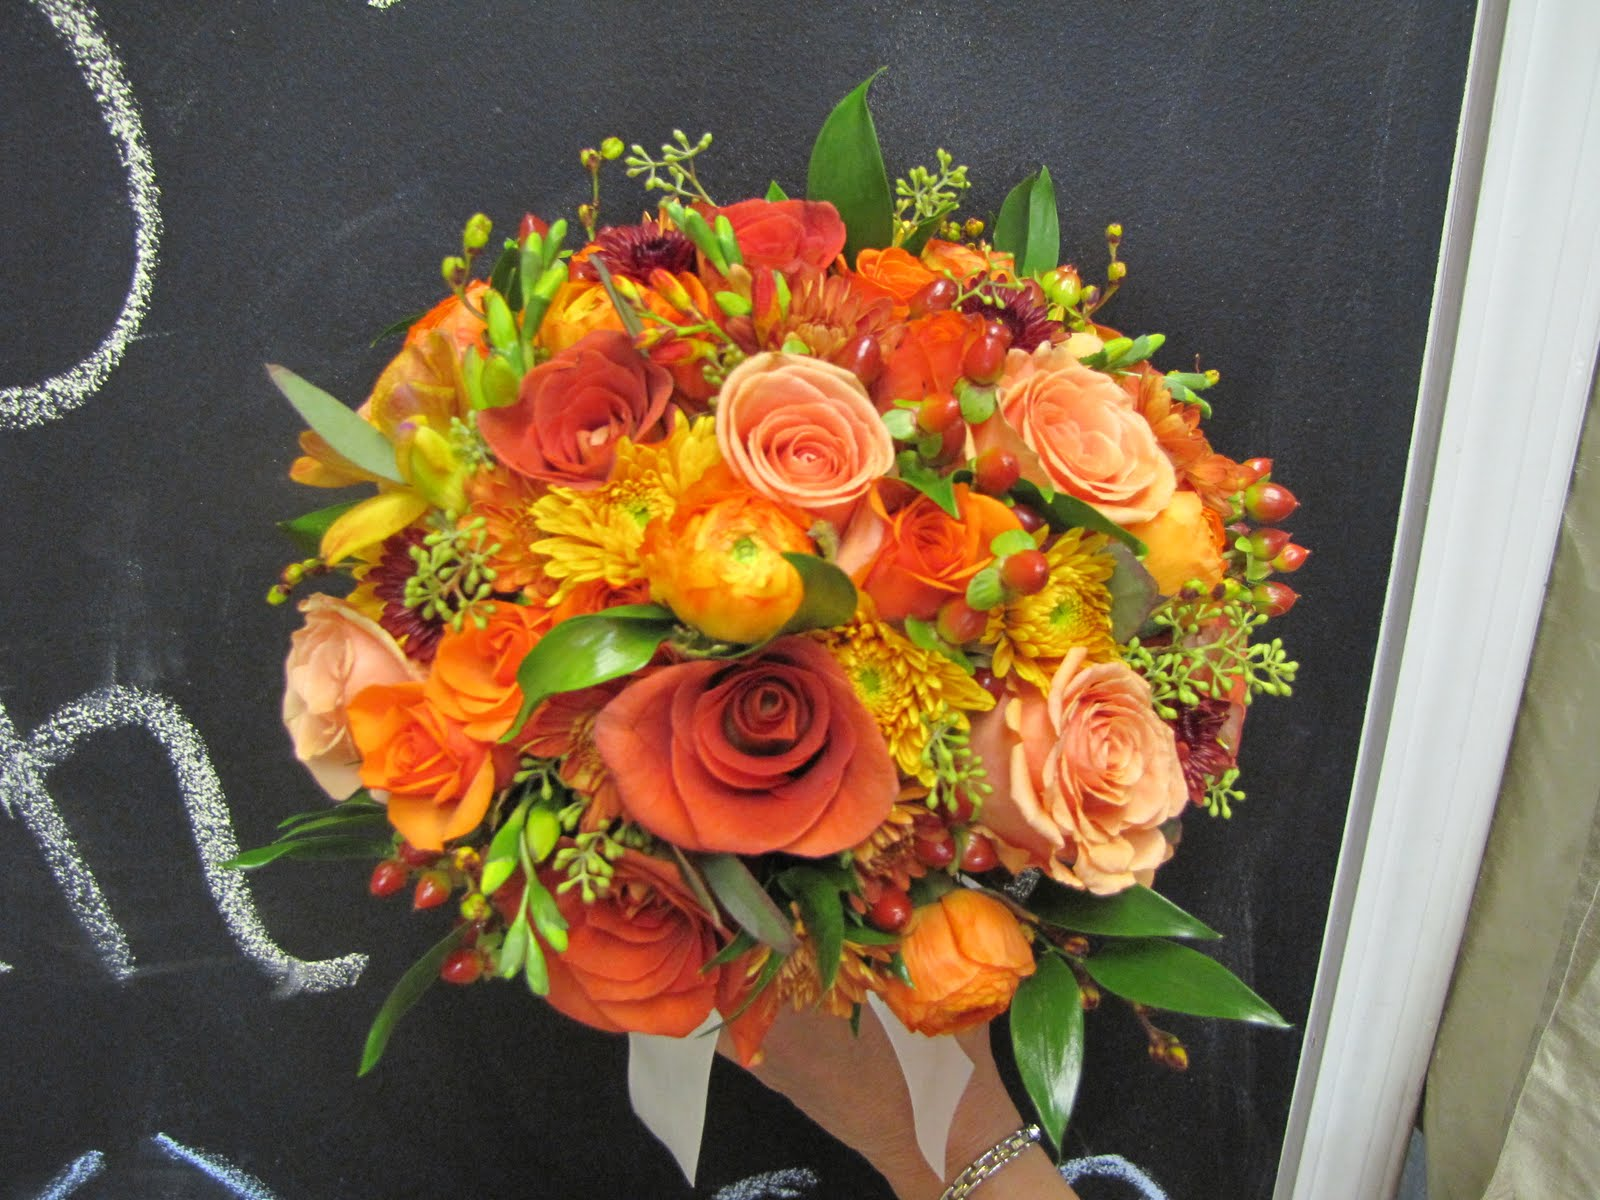 Fall wedding flowers are my